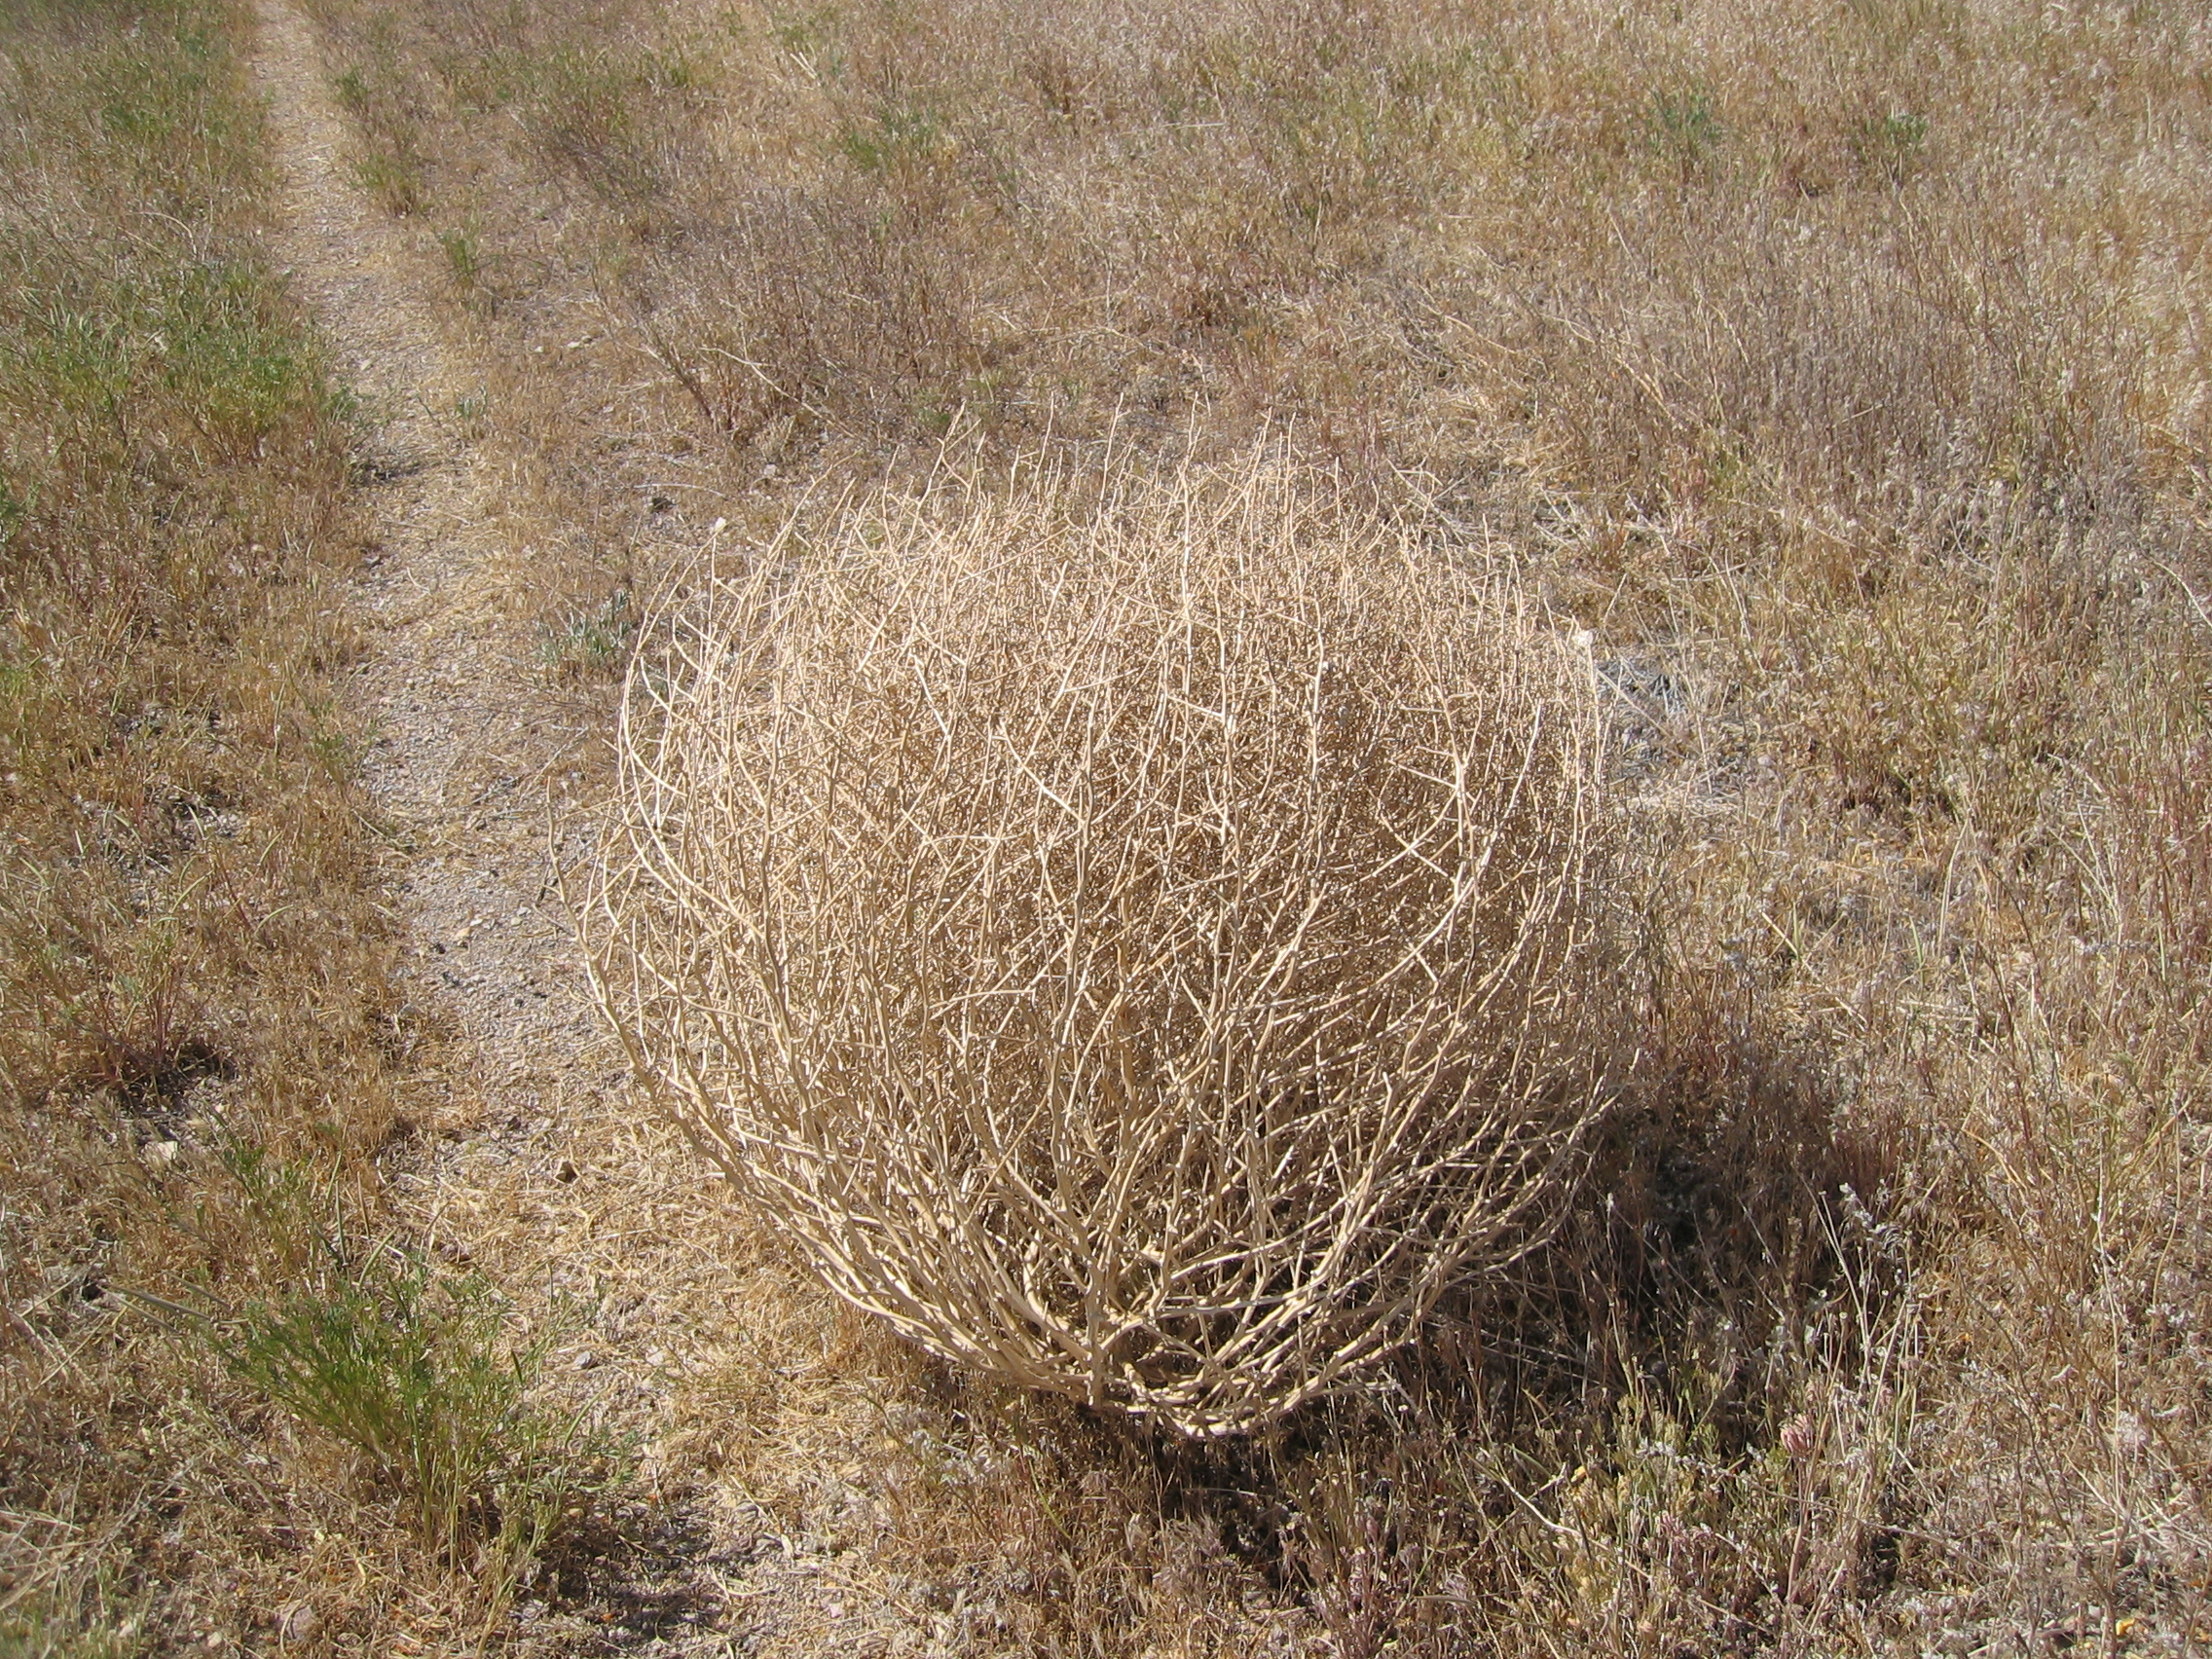 tumble weed blowing wind foundation tumble weed